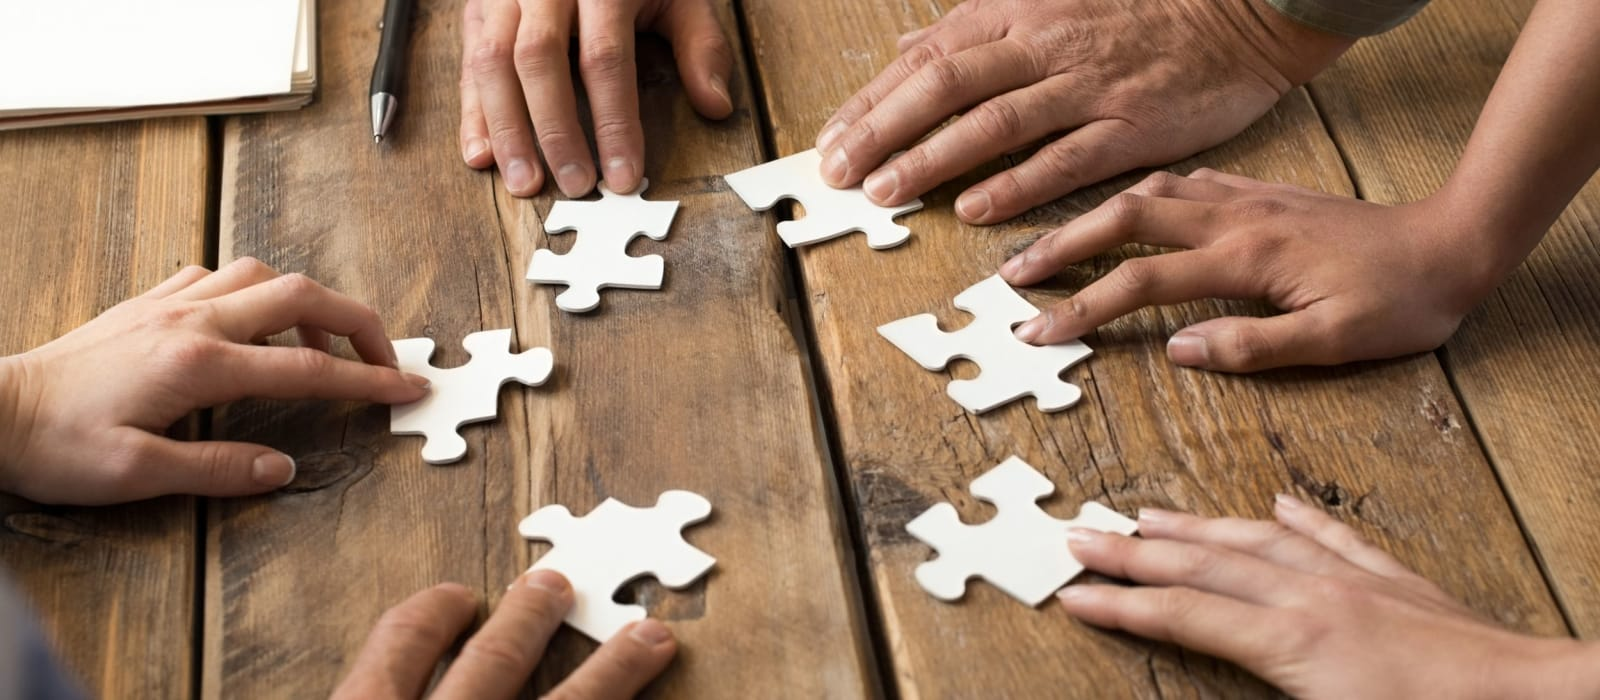 Hands putting together jigsaw